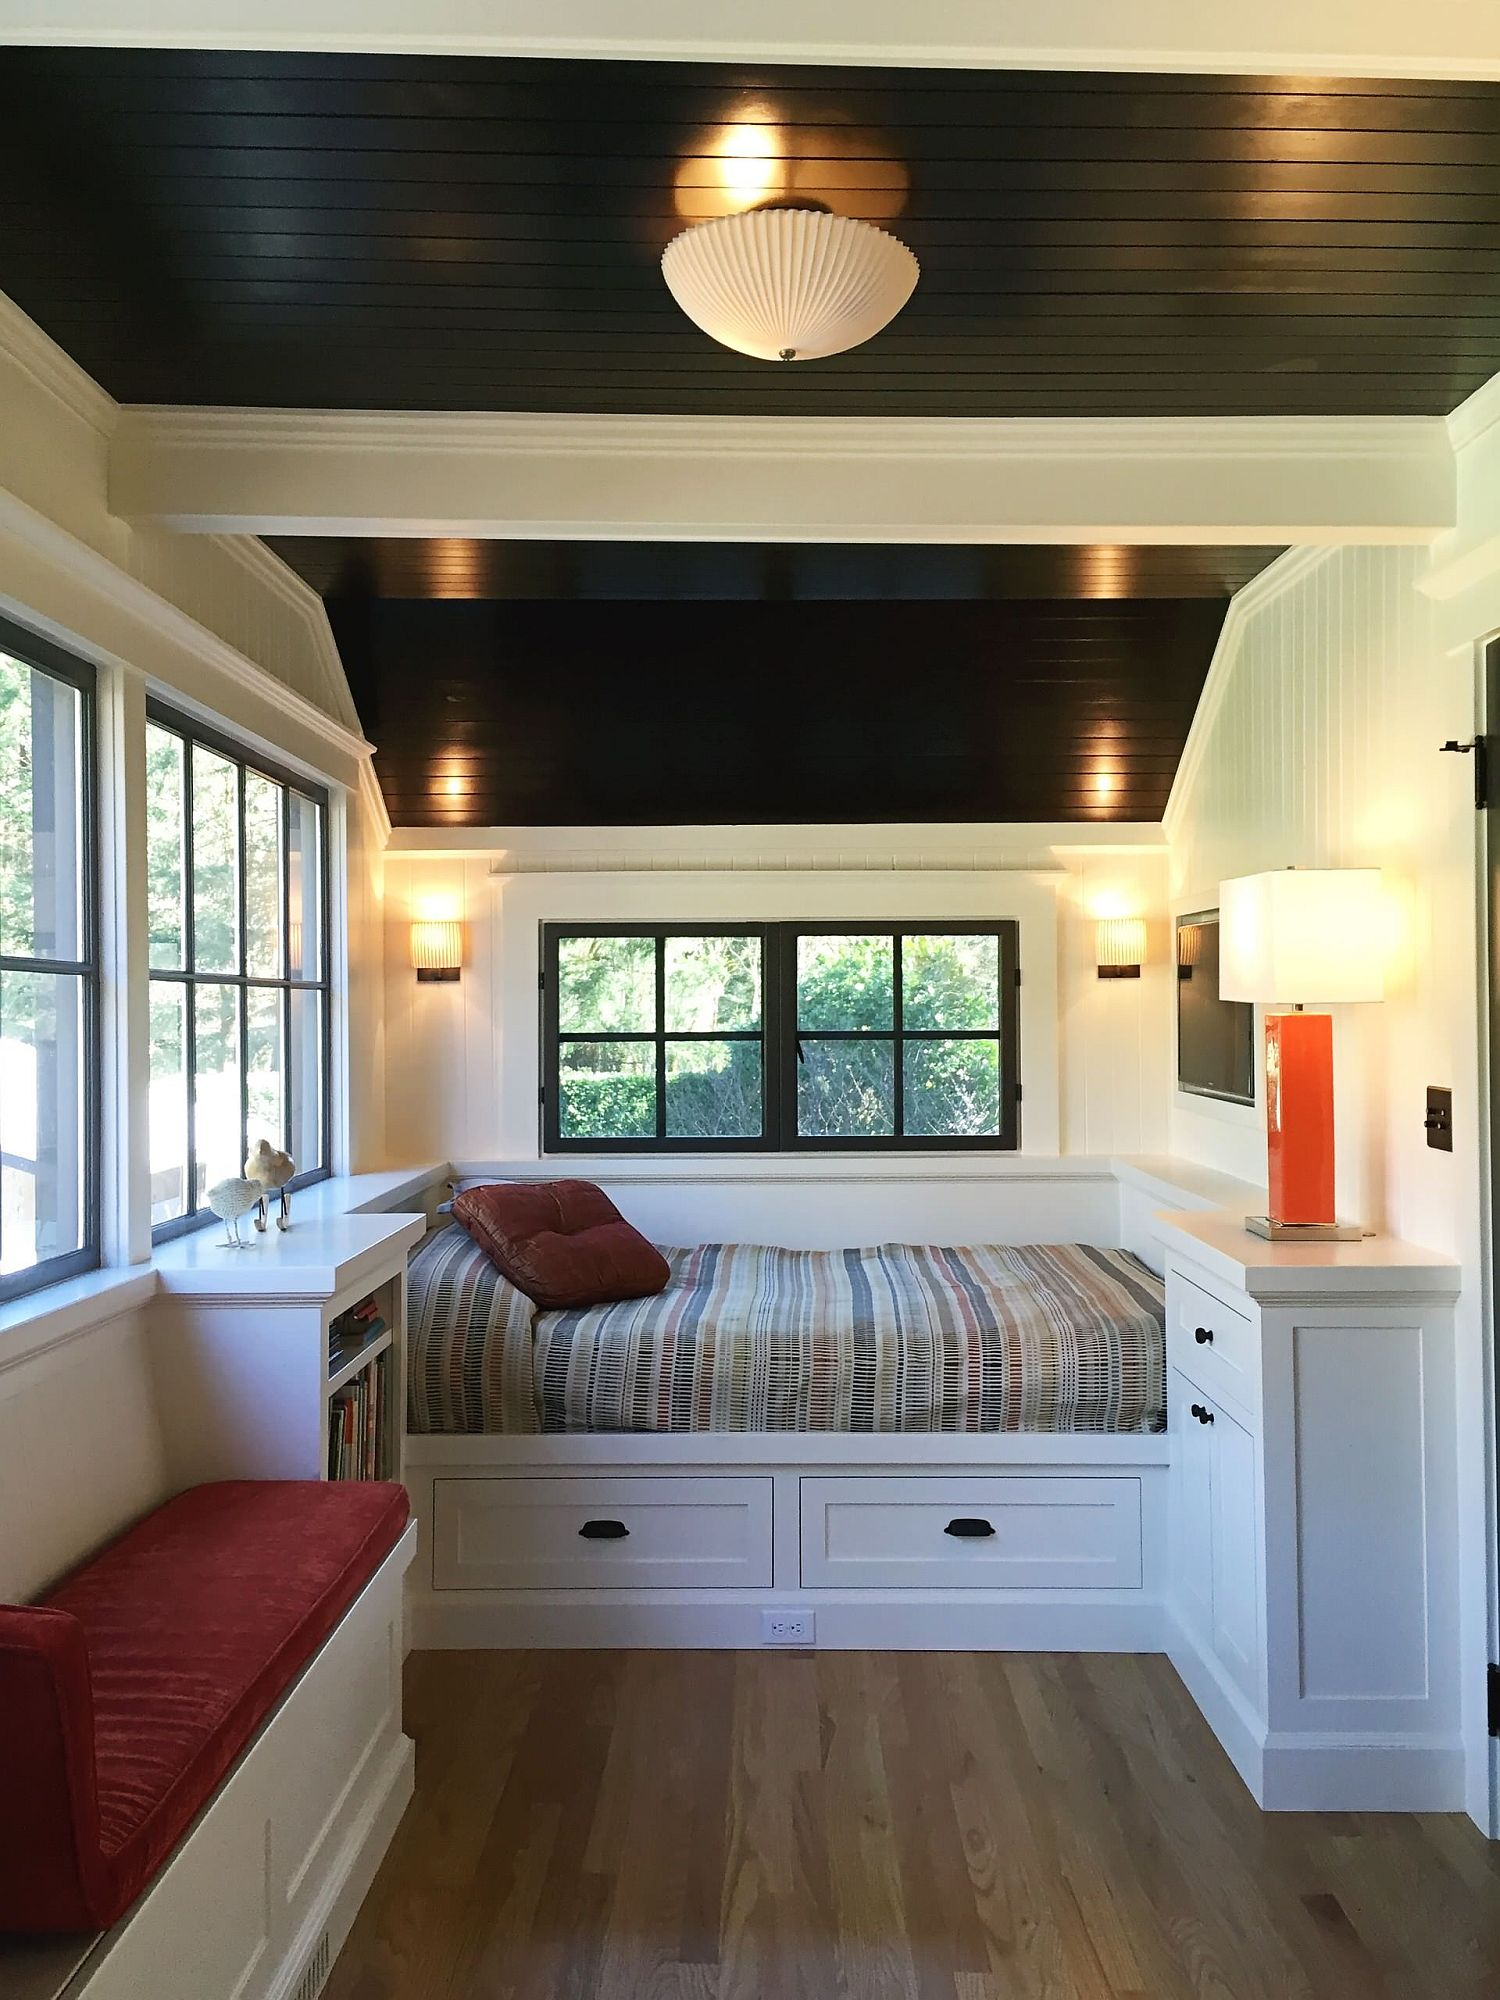 Tiny Space Upgrades: Smart Decorating Ideas on a Budget ... on Bedroom Ideas For Small Spaces  id=47858